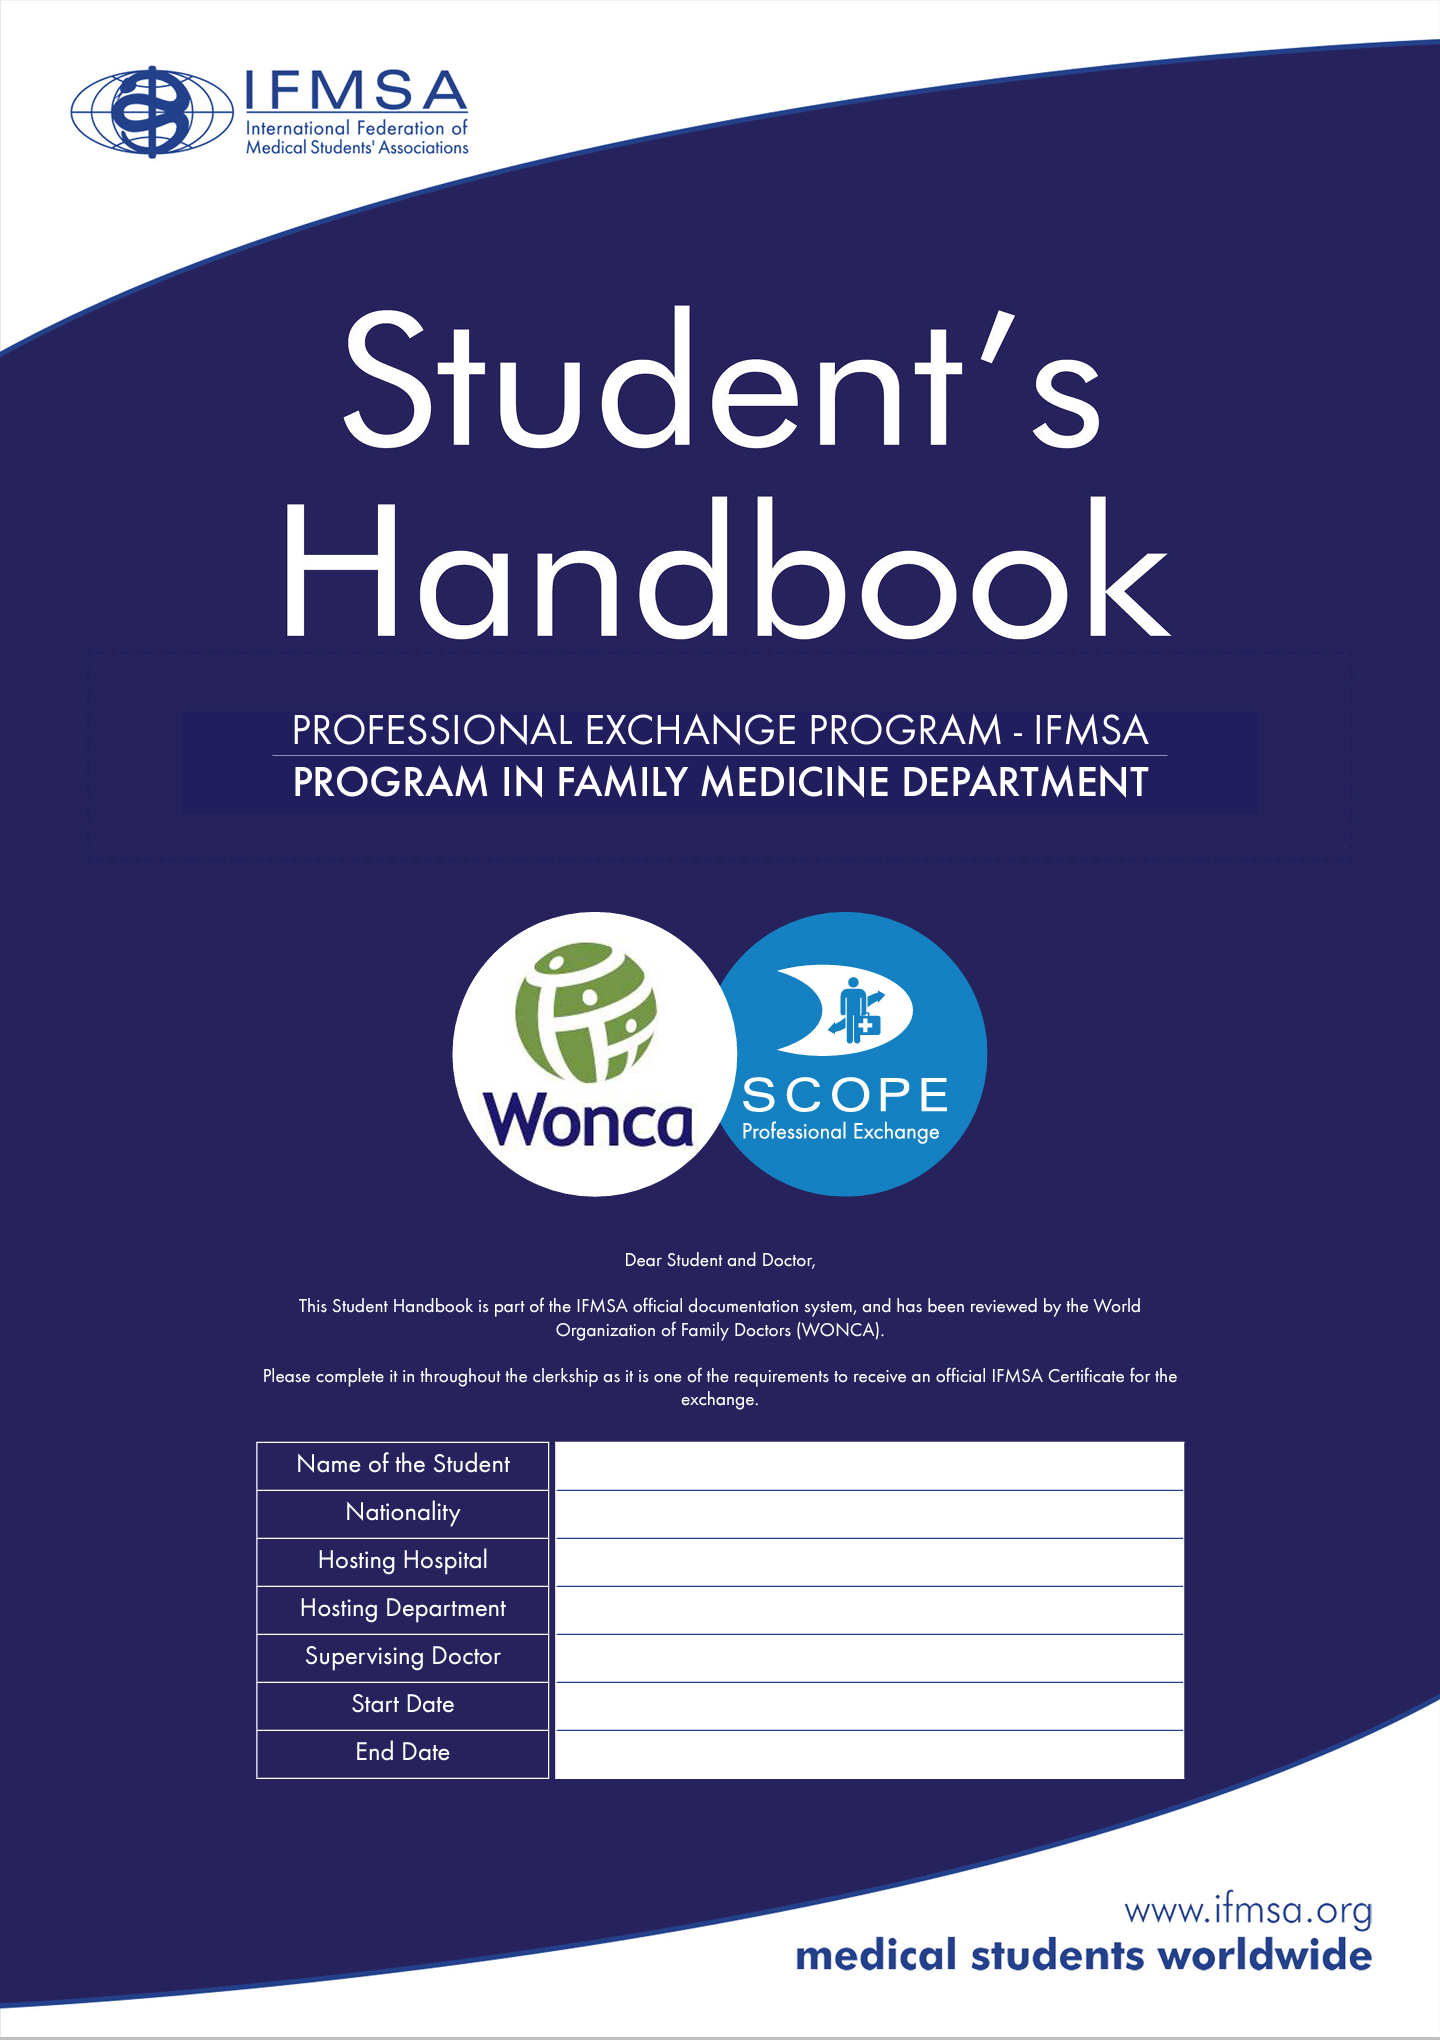 IFMSA and WONCA launches the new Student's Handbook for Professional Exchanges in Primary Care